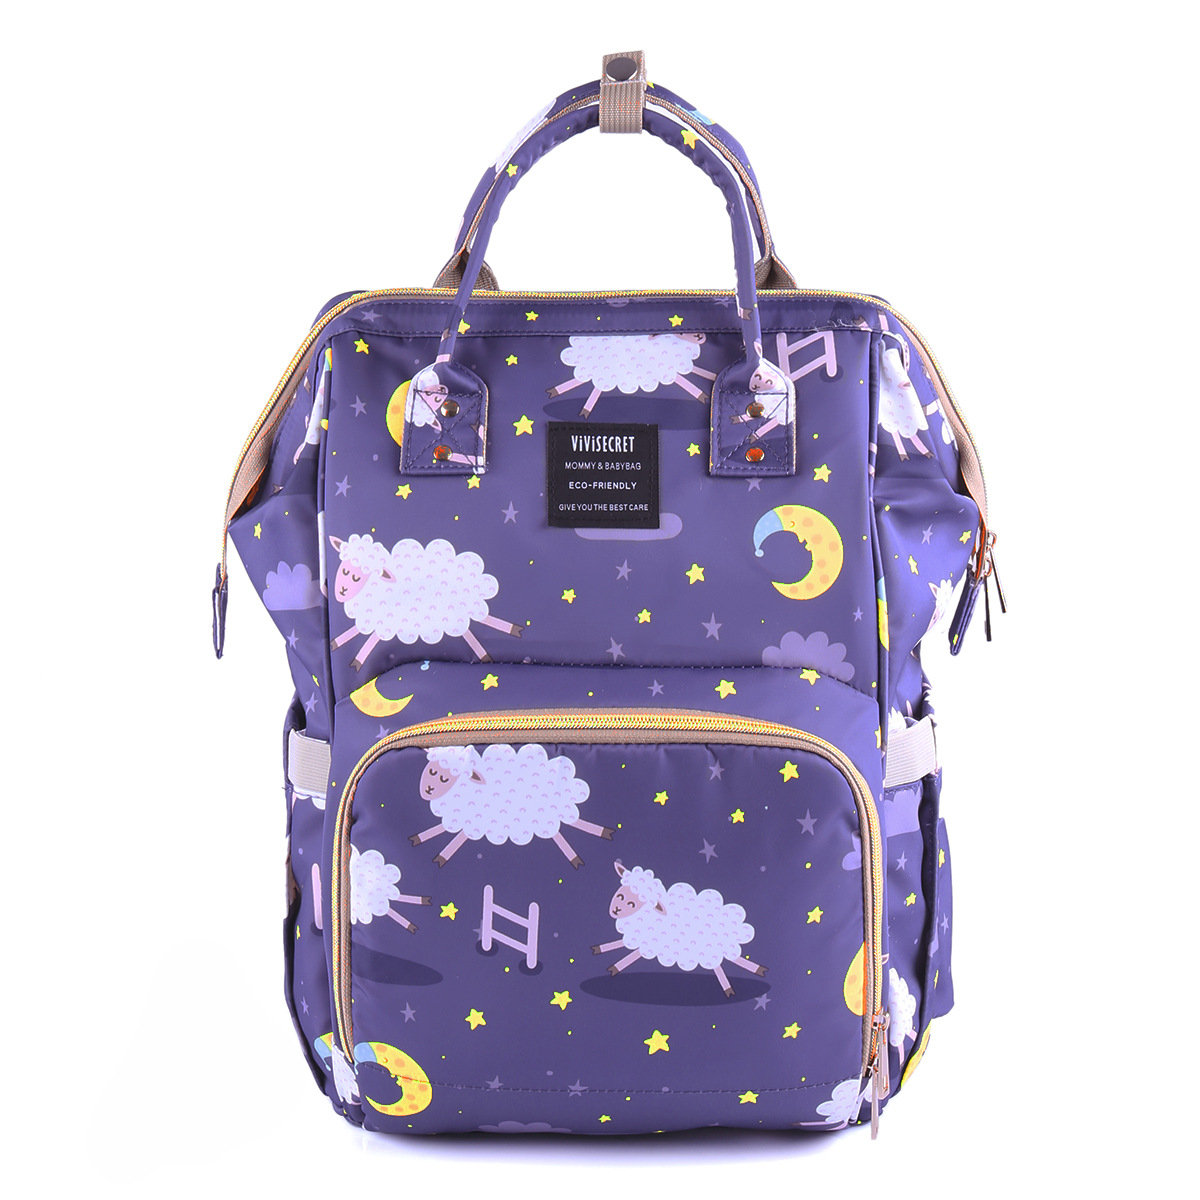 New Style Diaper Bag Printed Large Capacity Waterproof MOTHER'S Bag Shoulder Multi-functional Casual Fashion Mom And Baby Expect